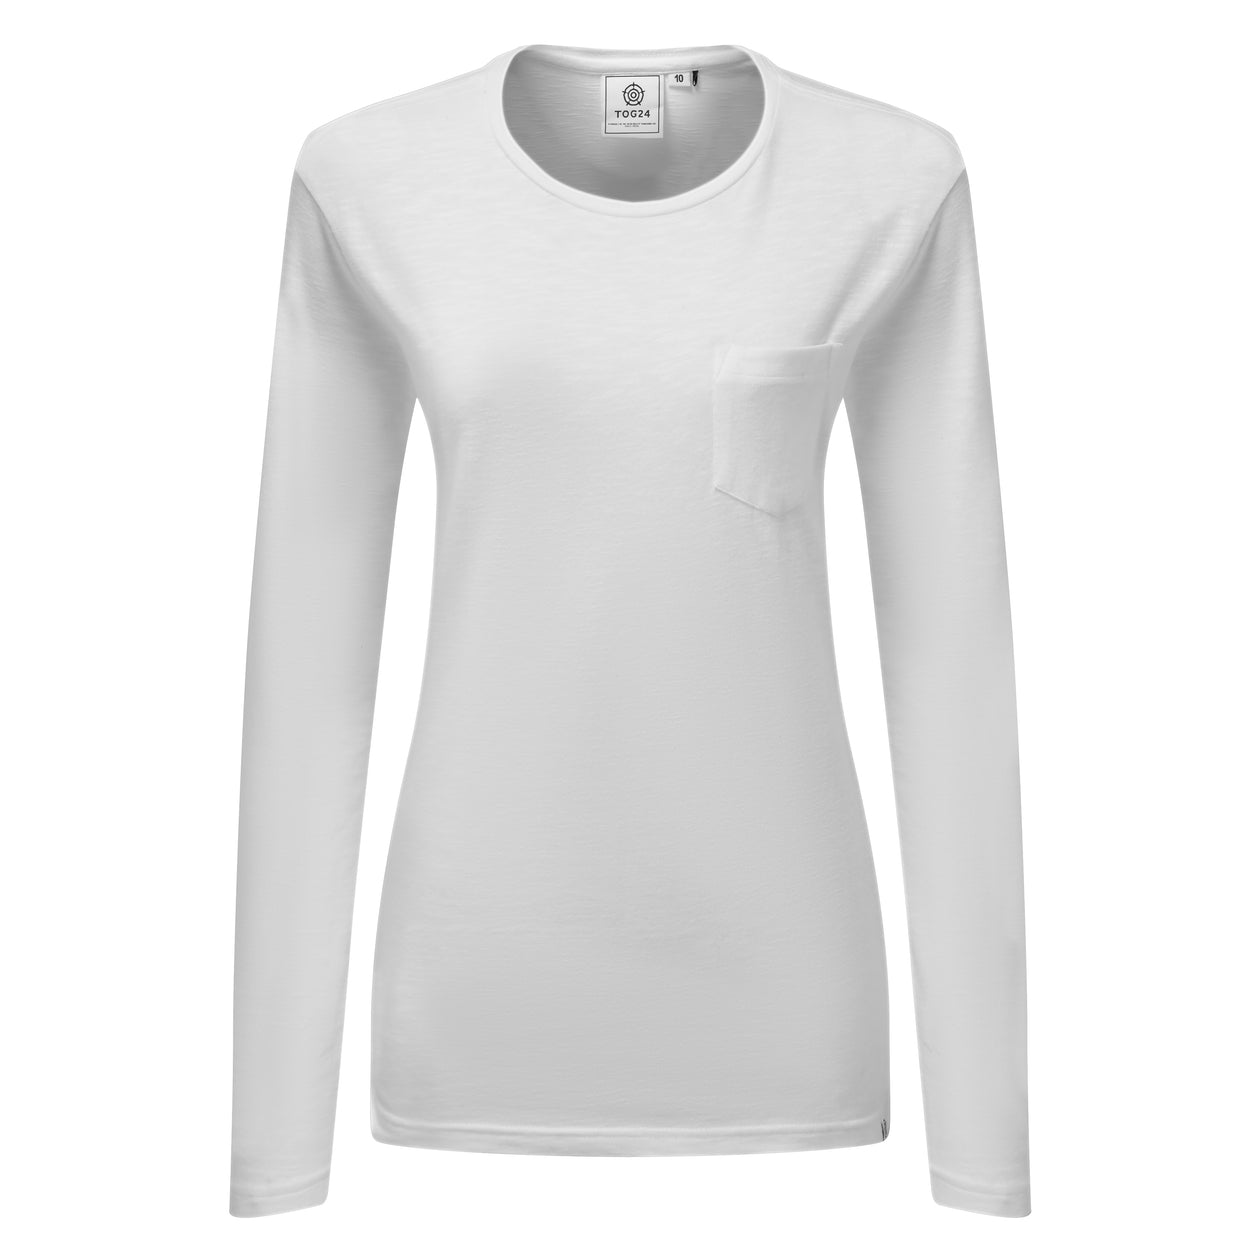 Myrtle Womens Long Sleeve Pocket T-Shirt - White image 4